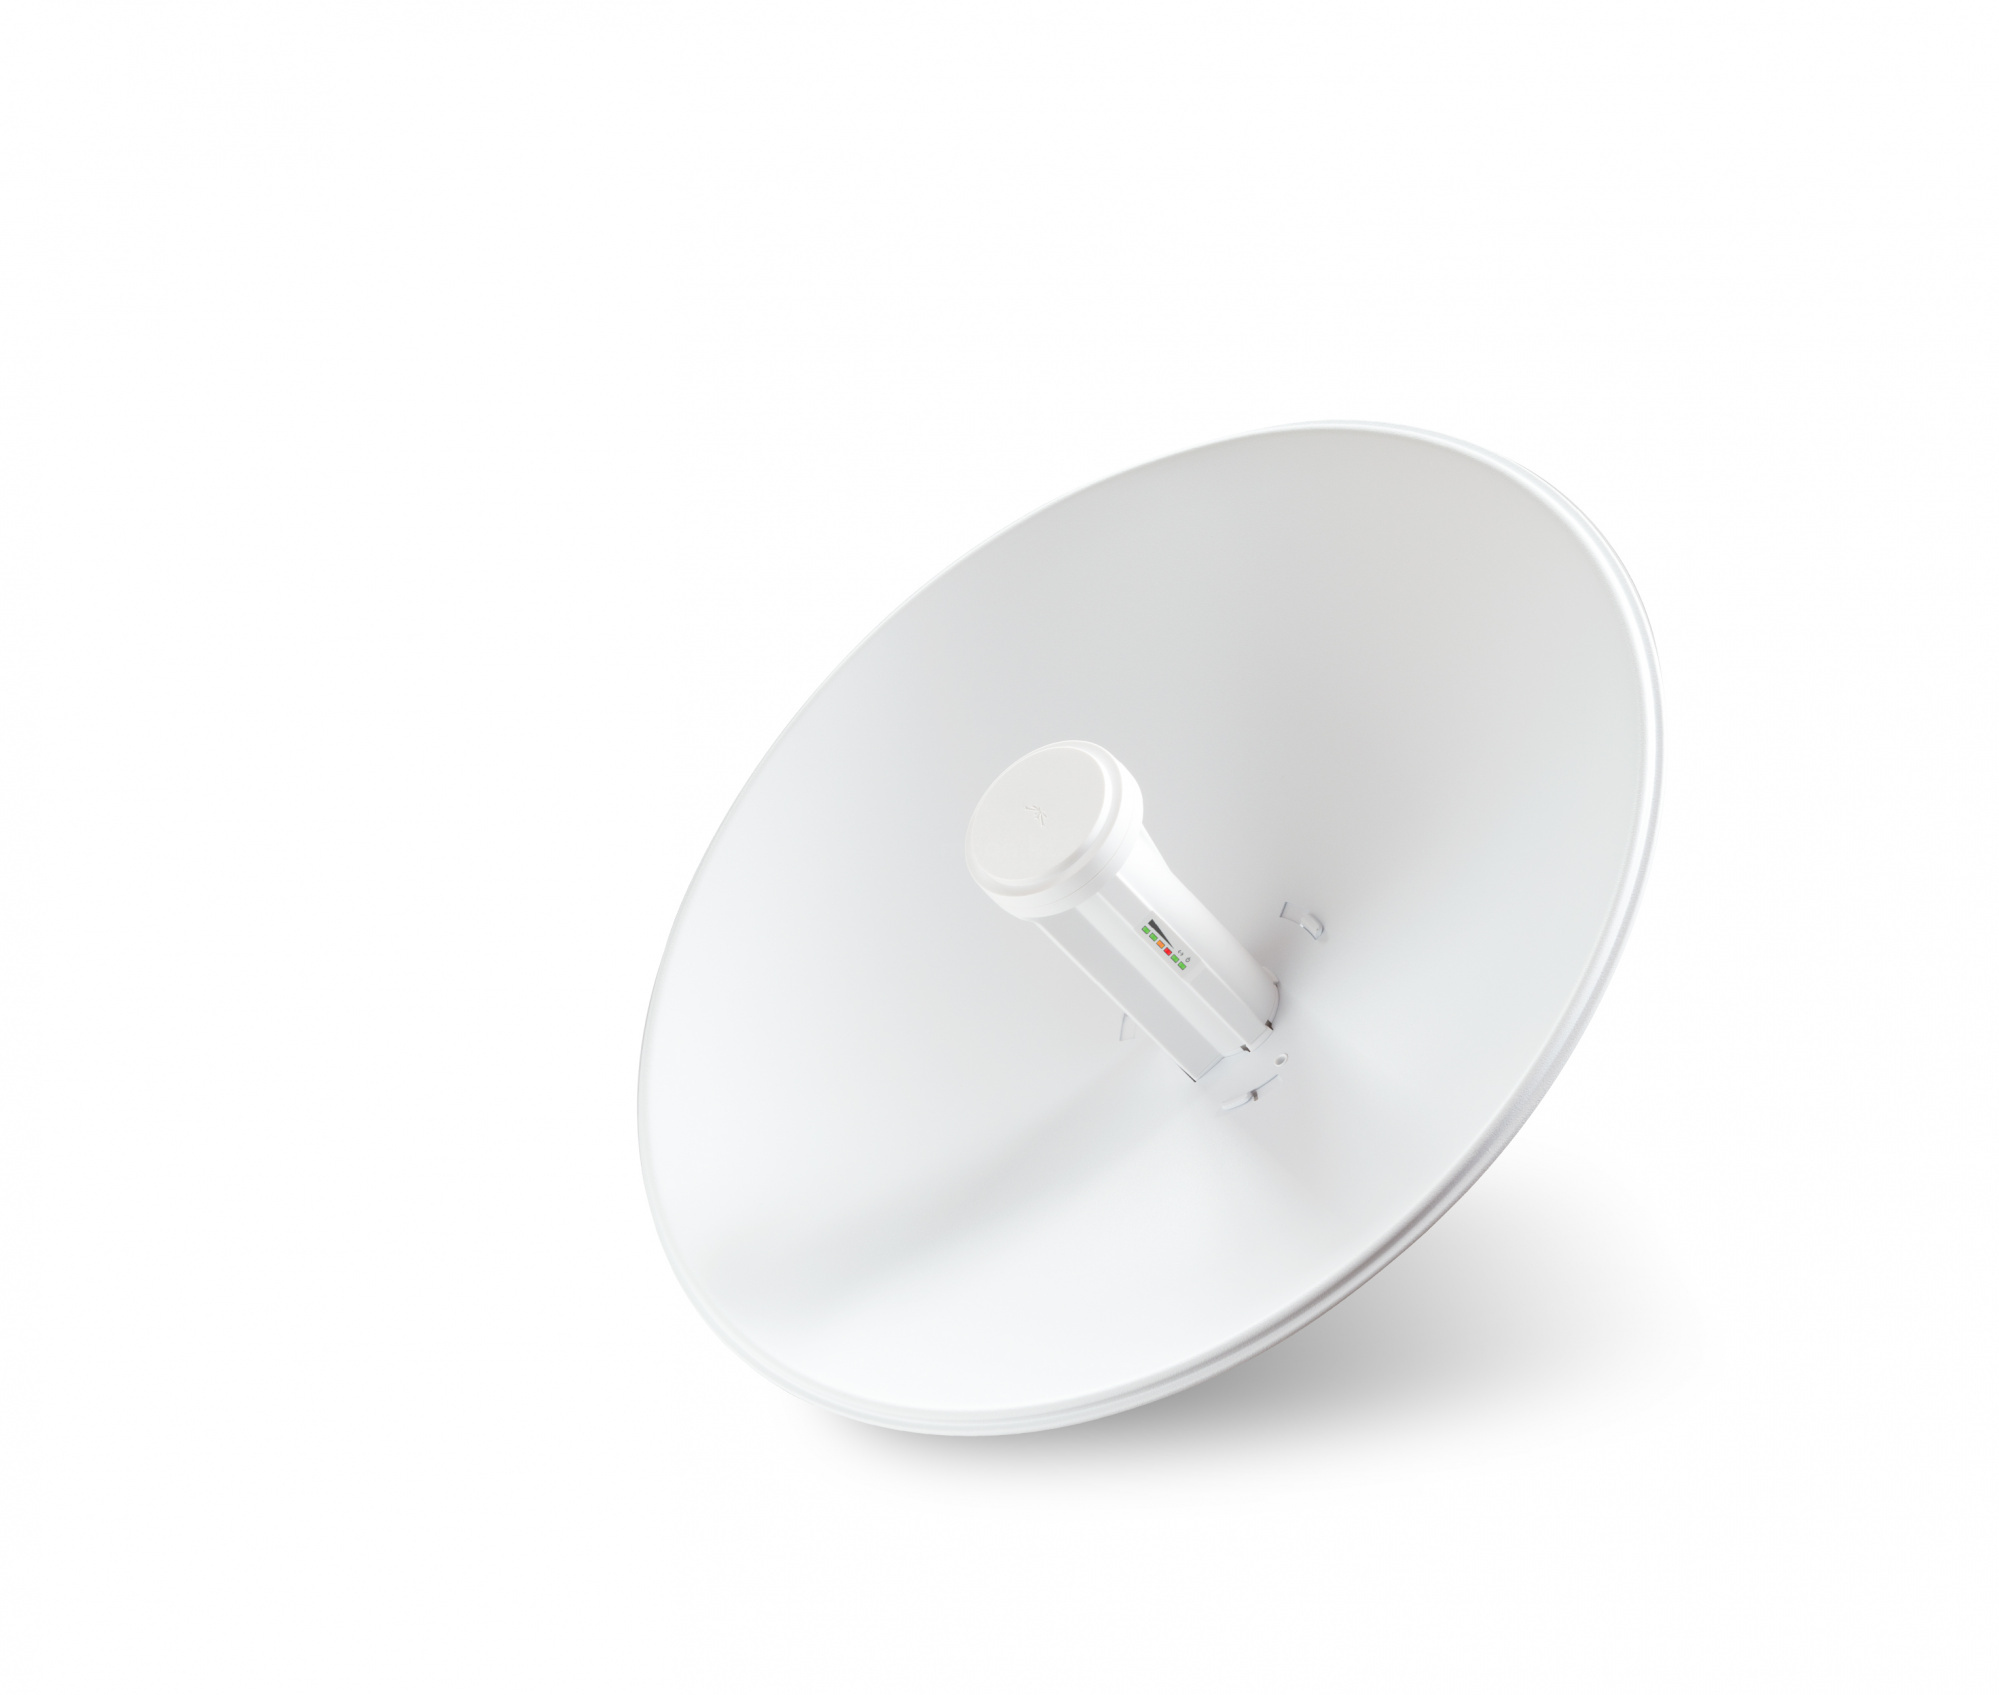 Радиомост Wi-Fi Ubiquiti PBE-M5-400 5 GHz PowerBeam, airMAX, 400 mm, ISO